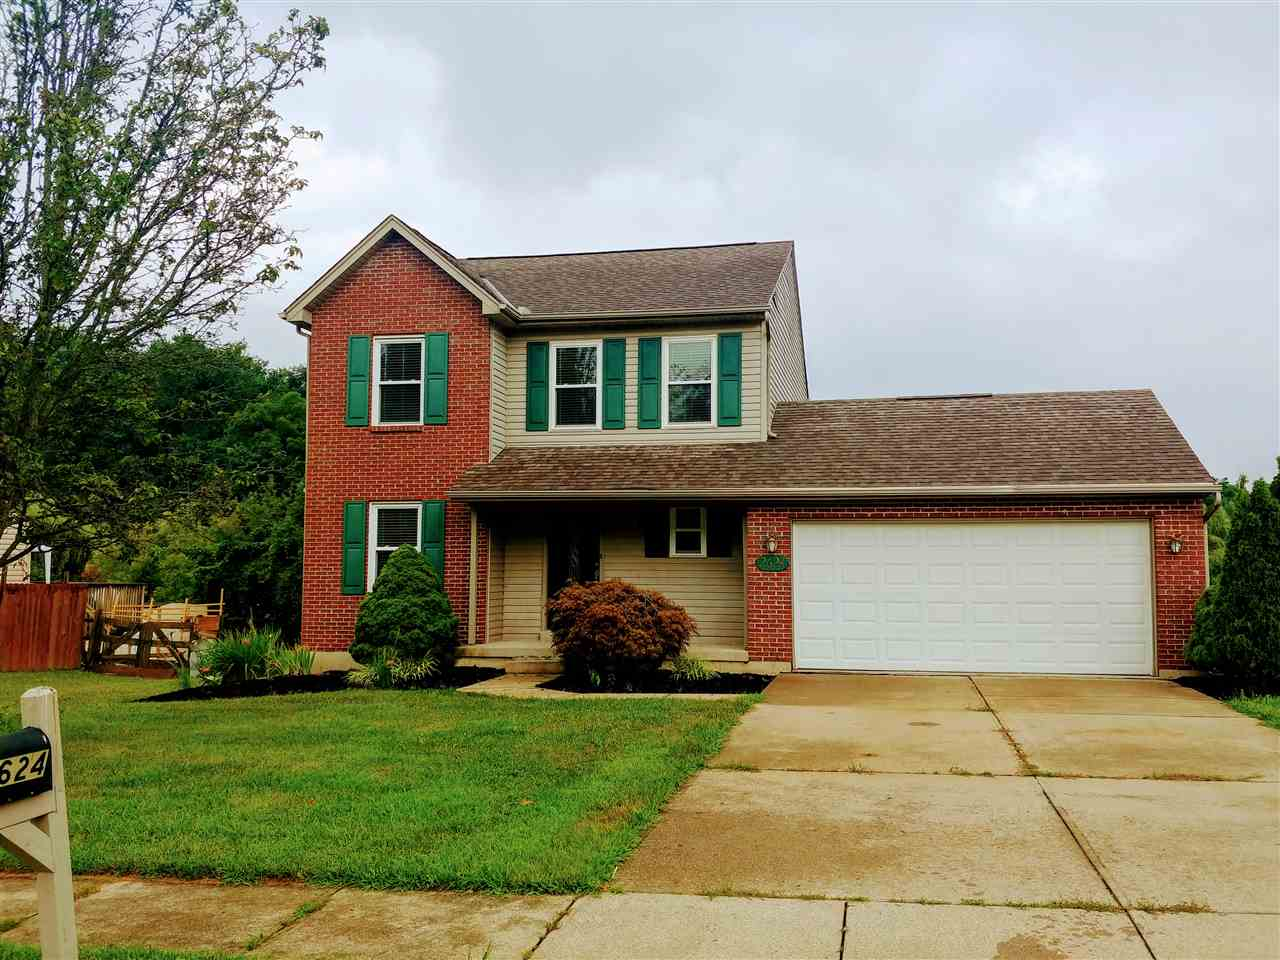 Photo 1 for 2624 Burdsall Dr Burlington, KY 41005